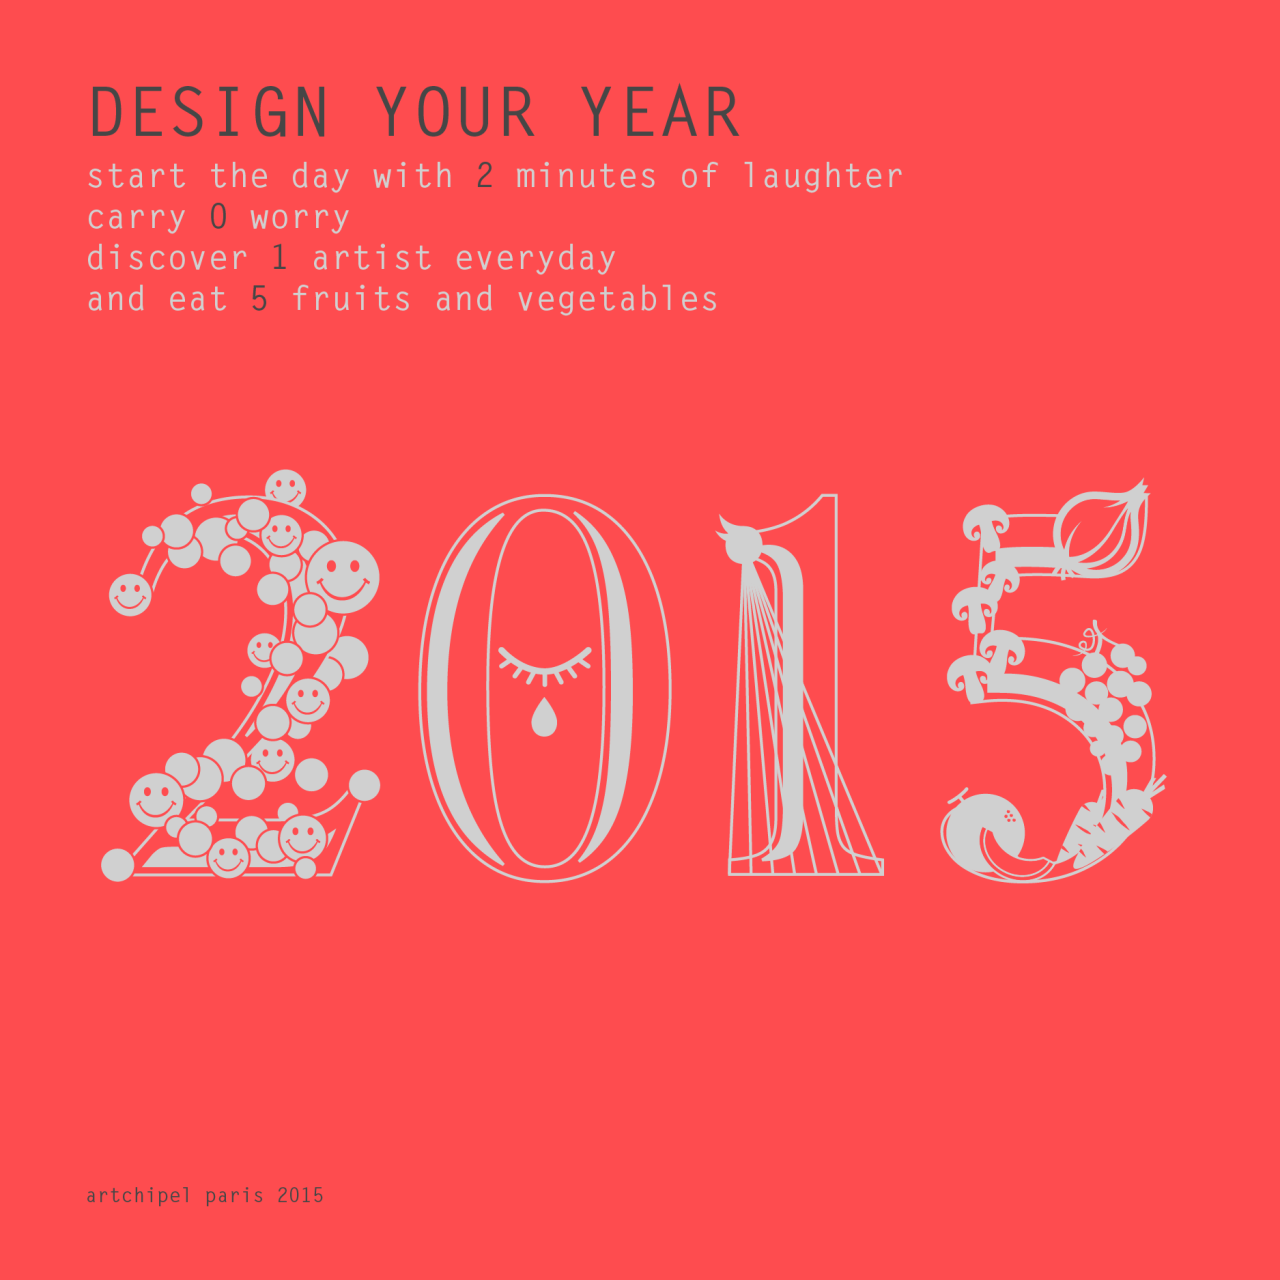 http://www.artchipel.com/post/107105639670/design-your-year-happy-2015